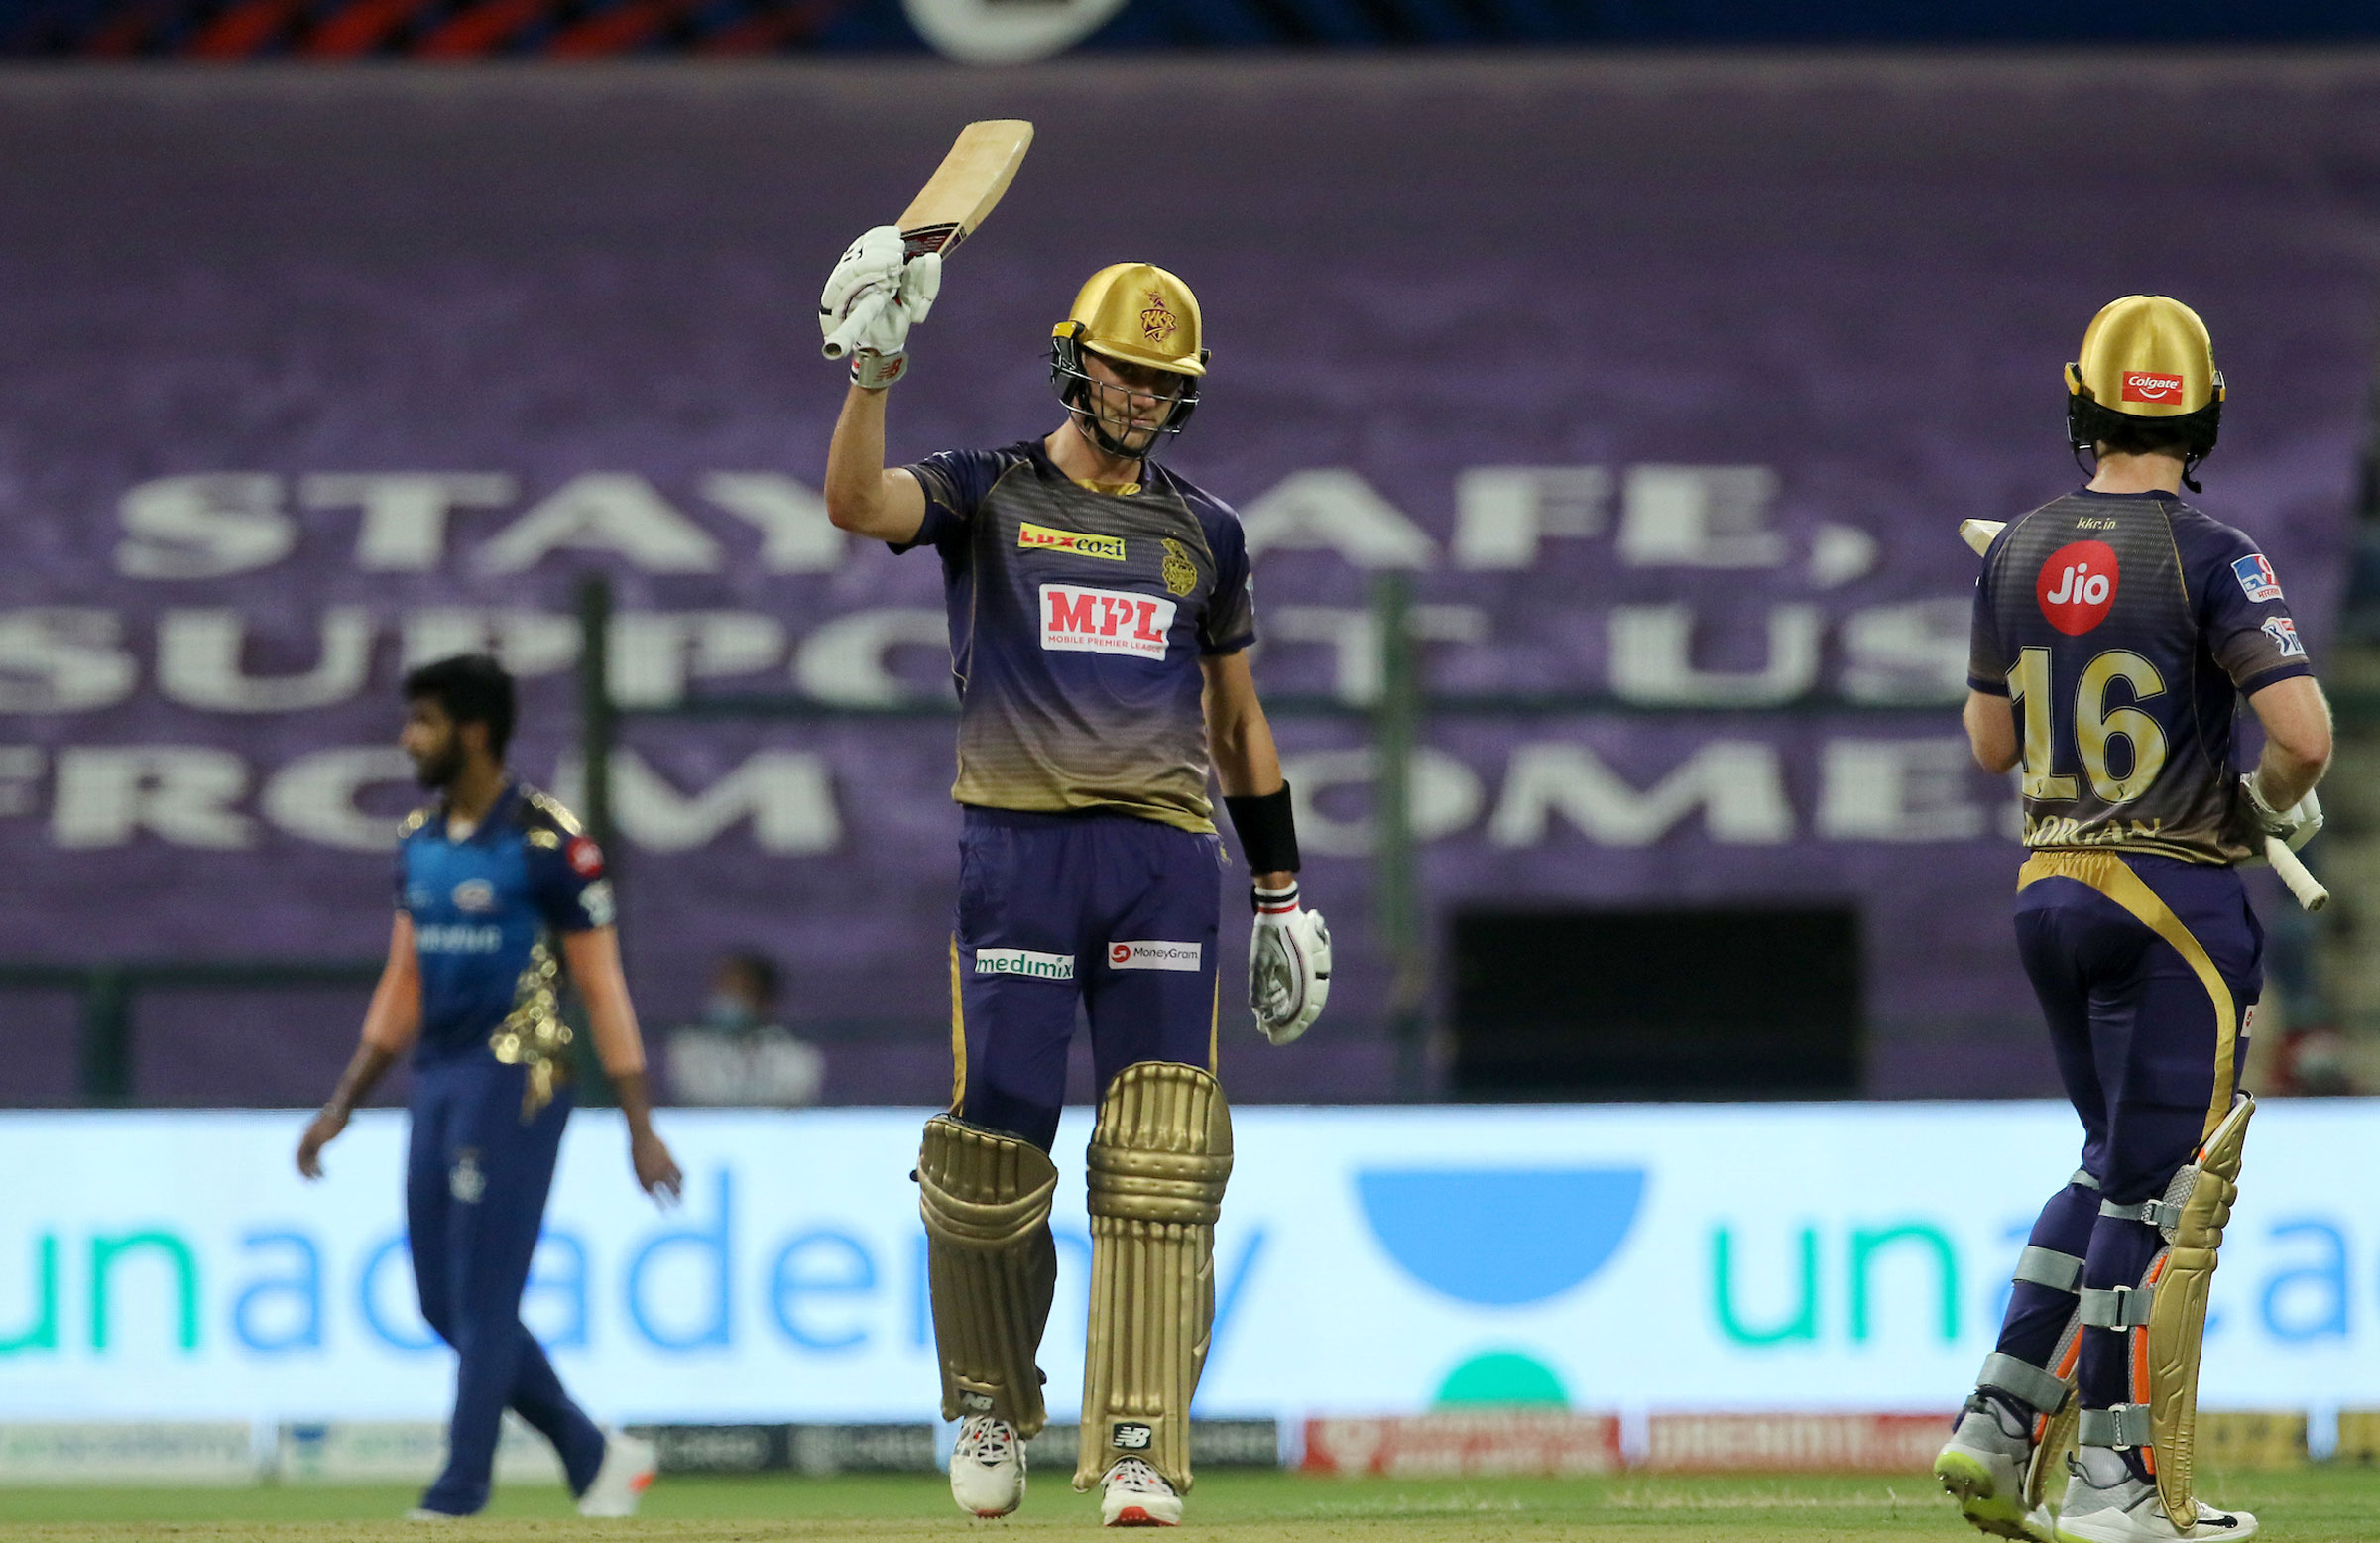 Cummins raises the bat for the first time in the IPL // BCCI/IPL